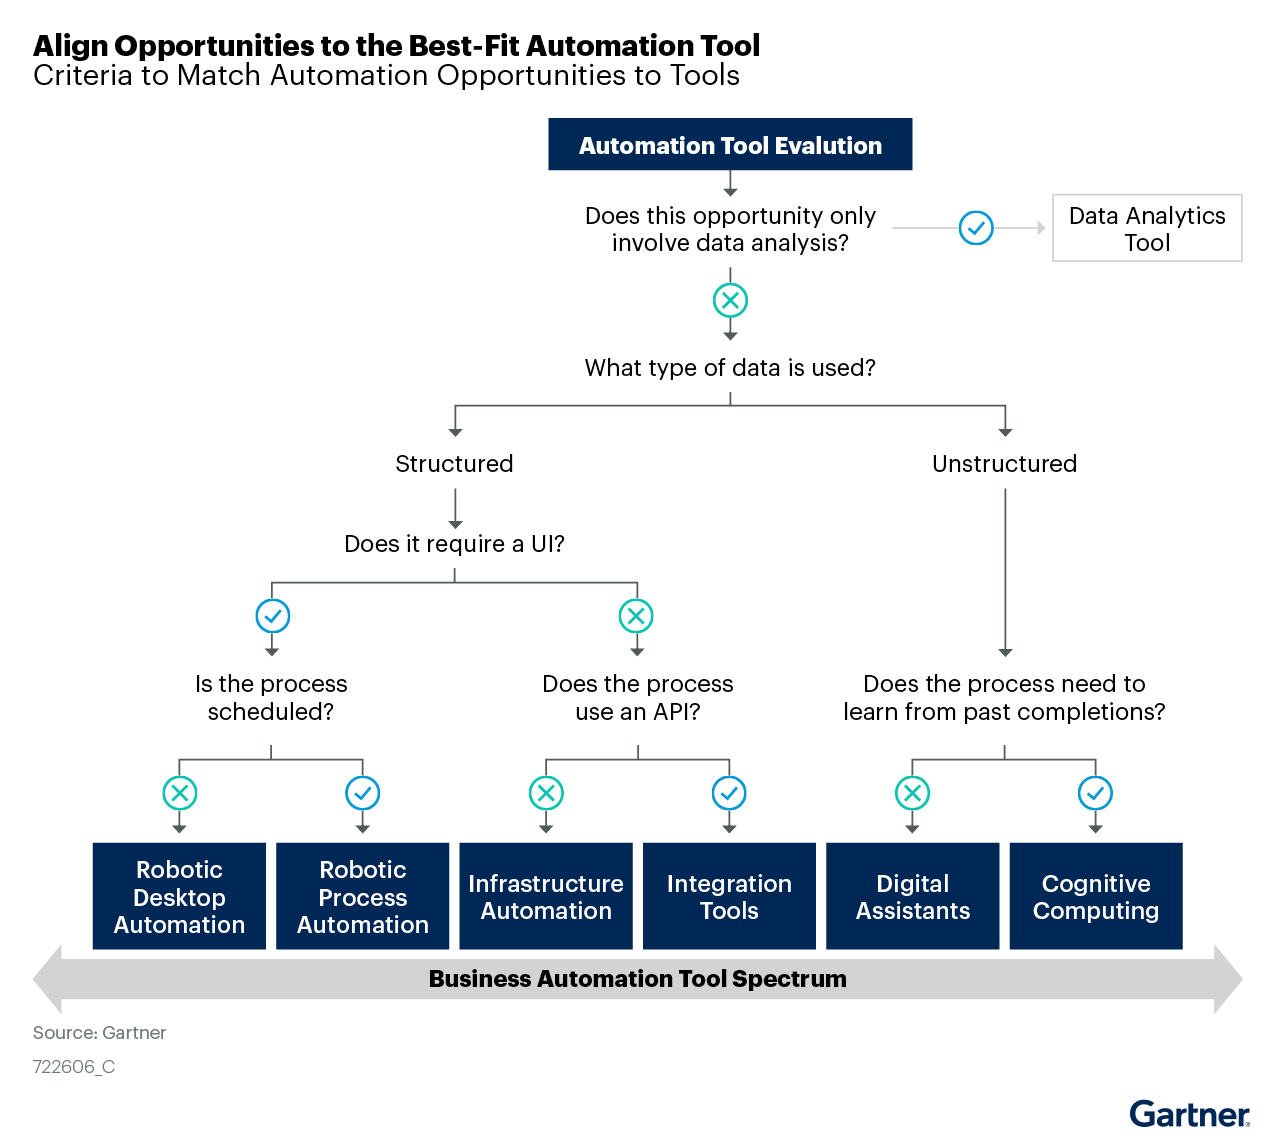 Figure 7: Align Opportunities to the Best-Fit Automation Tool